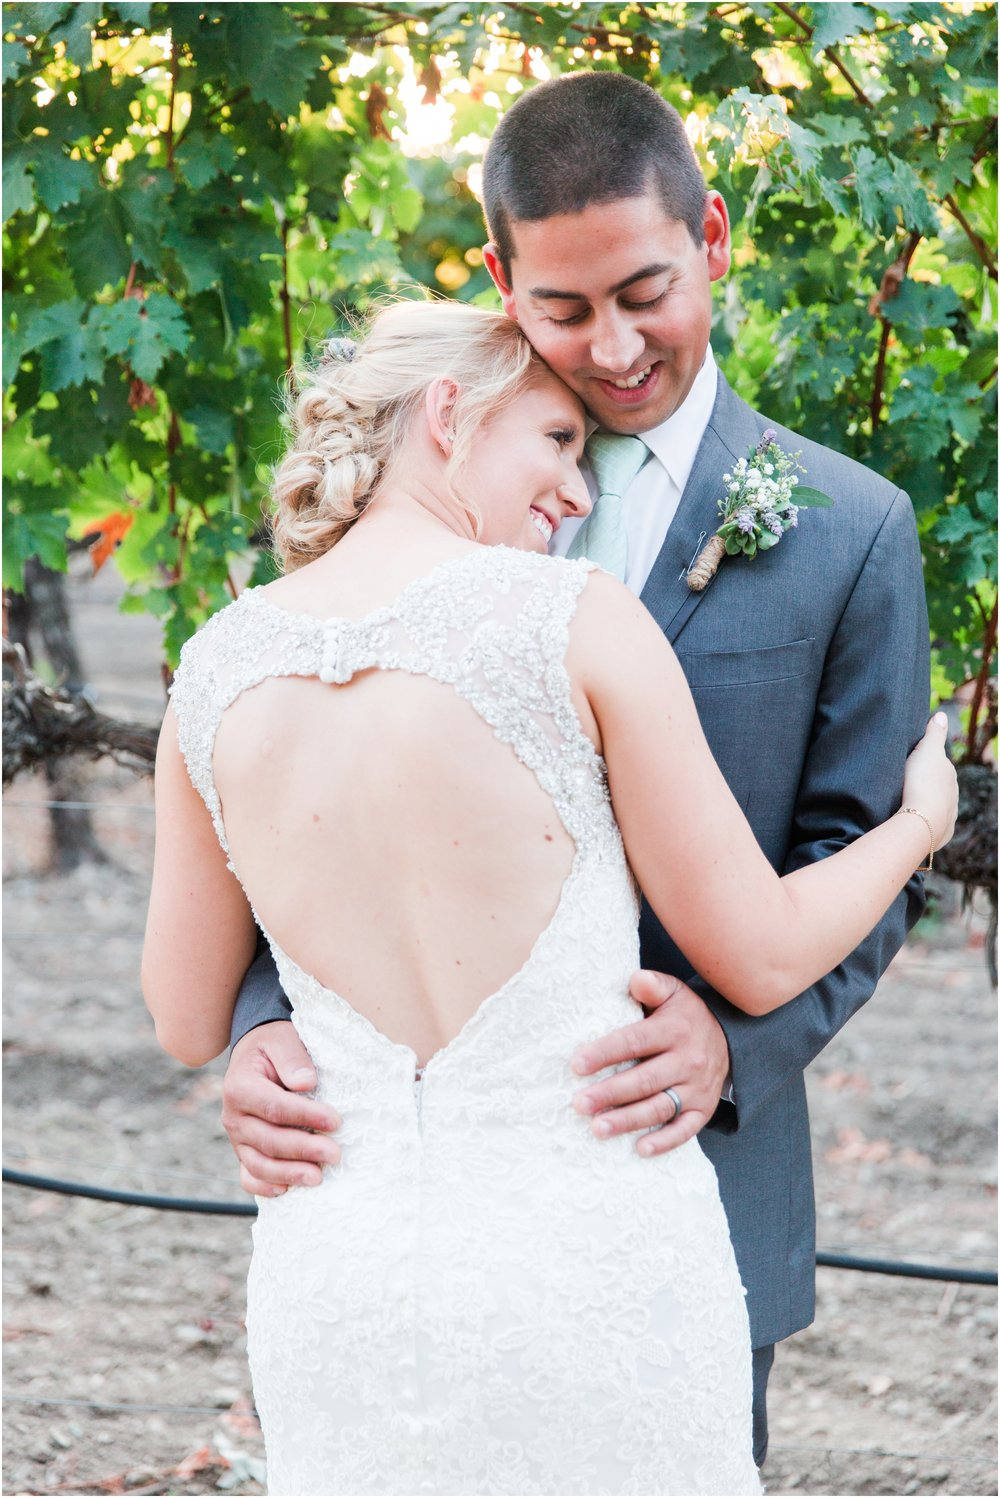 Retzlaff Winery wedding pictures by Briana Calderon Photography_2333.jpg